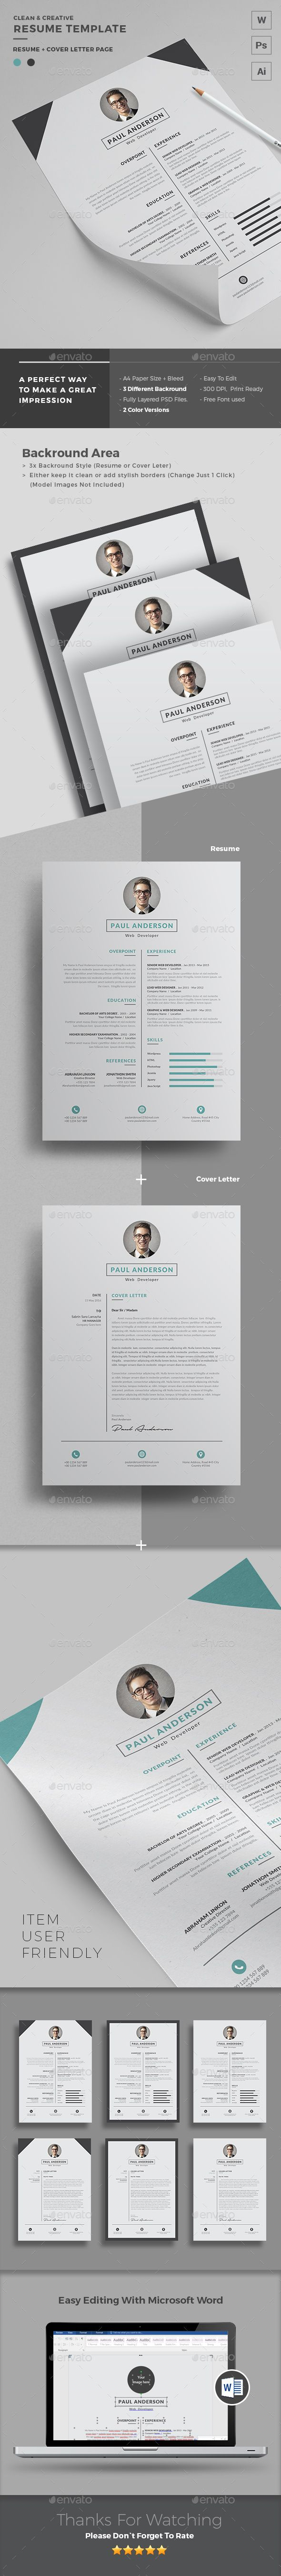 free resume templates microsoft word 2015%0A Resume